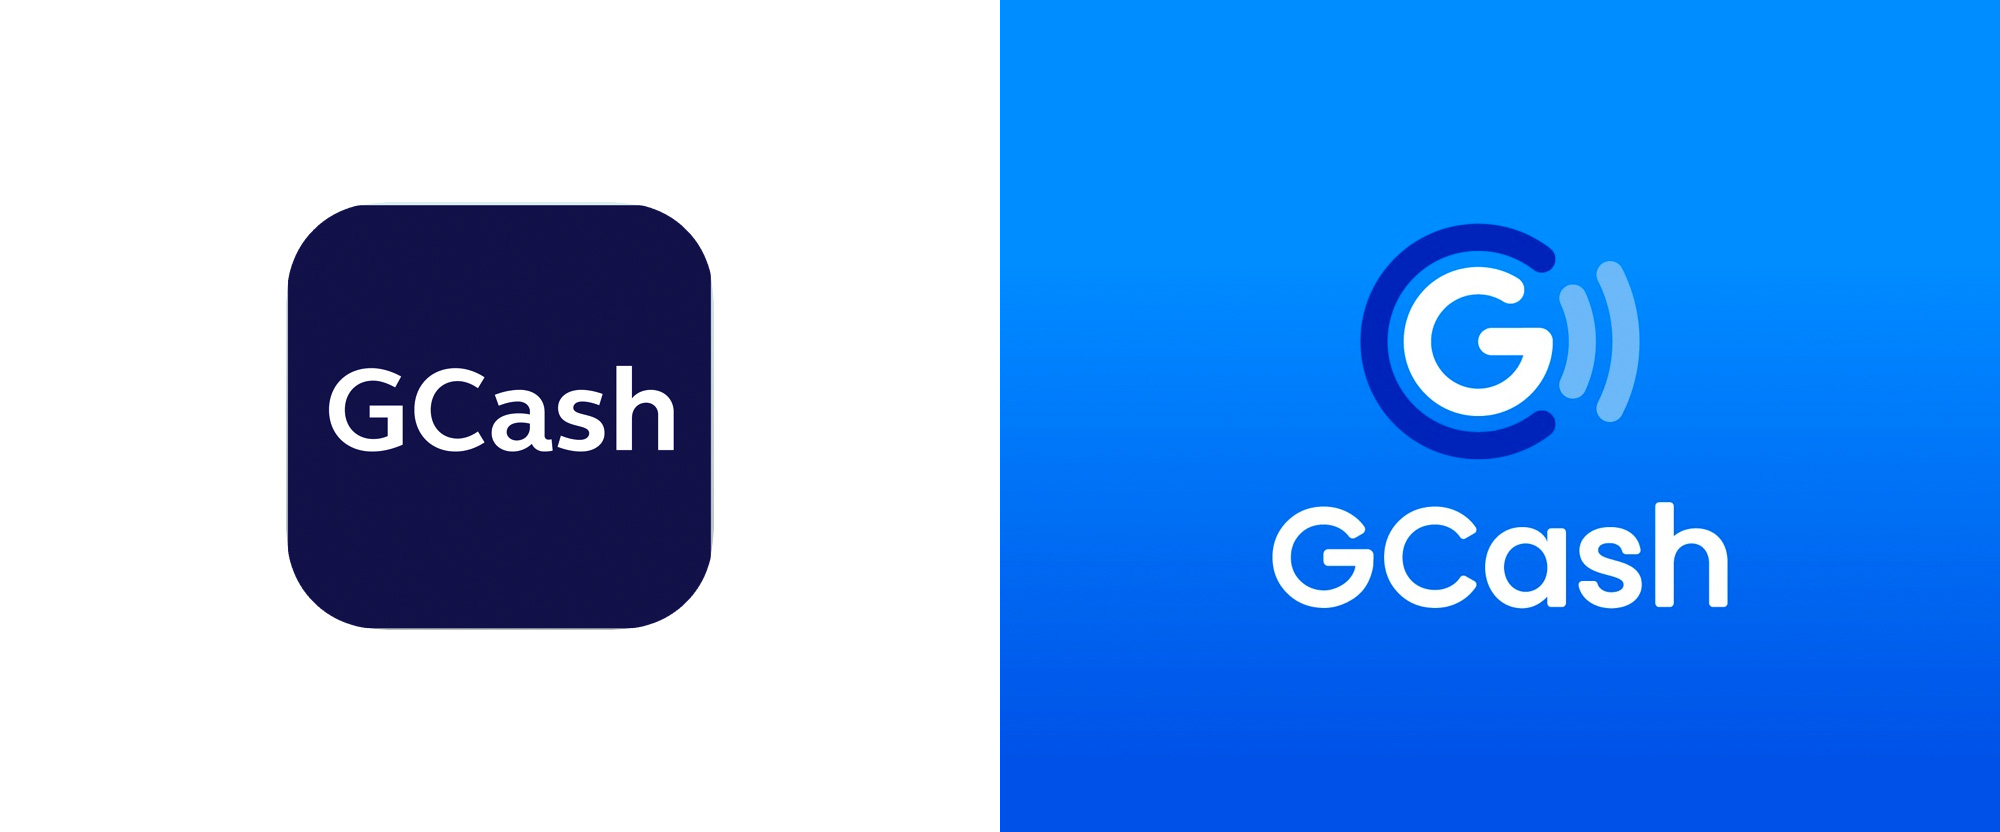 New Logo for GCash